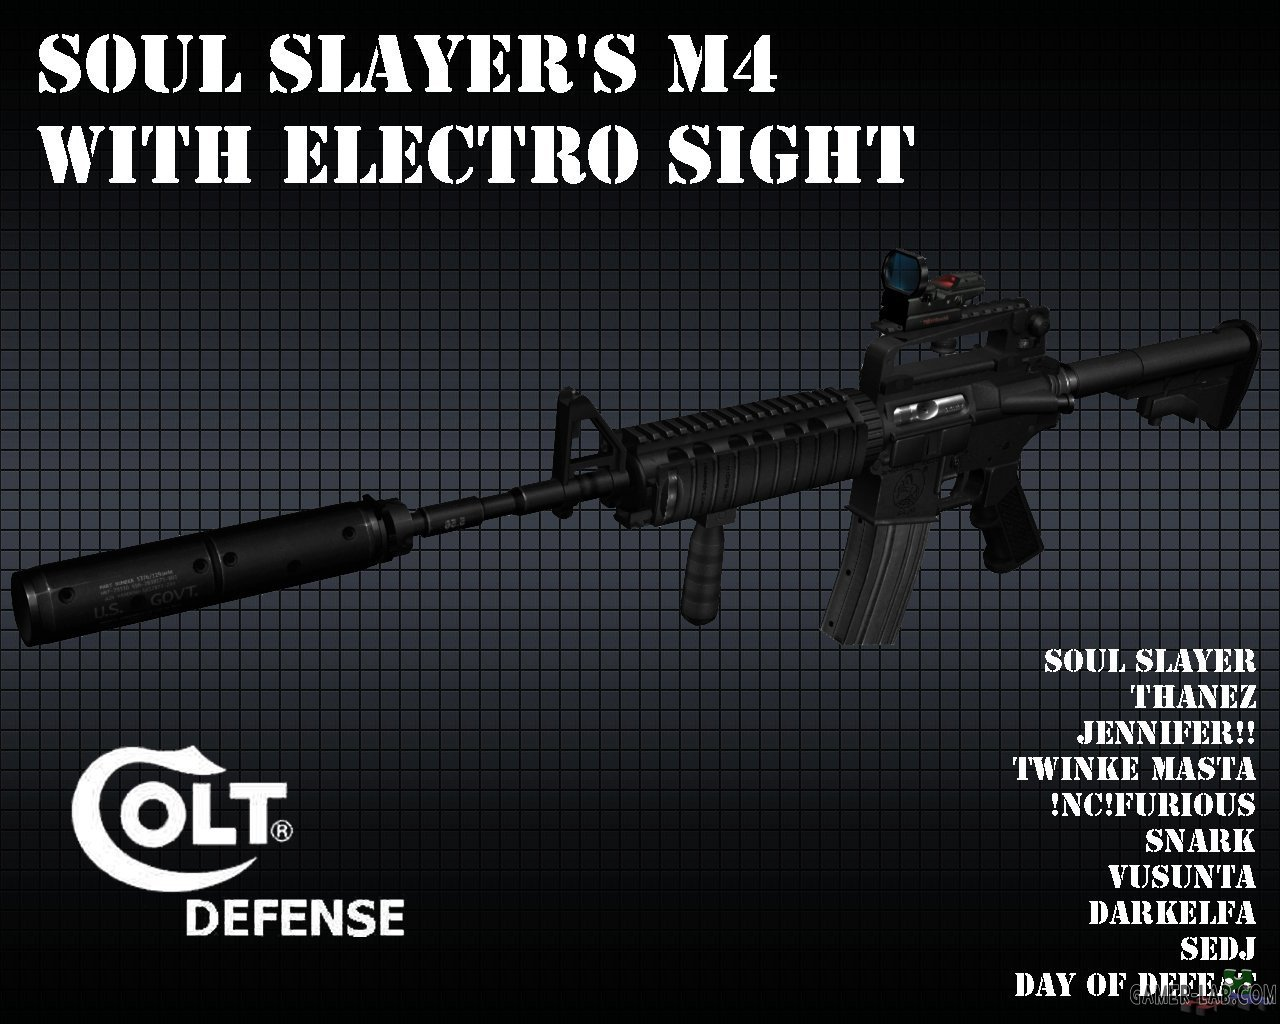 Soul Slayer s M4 with Electro Sight